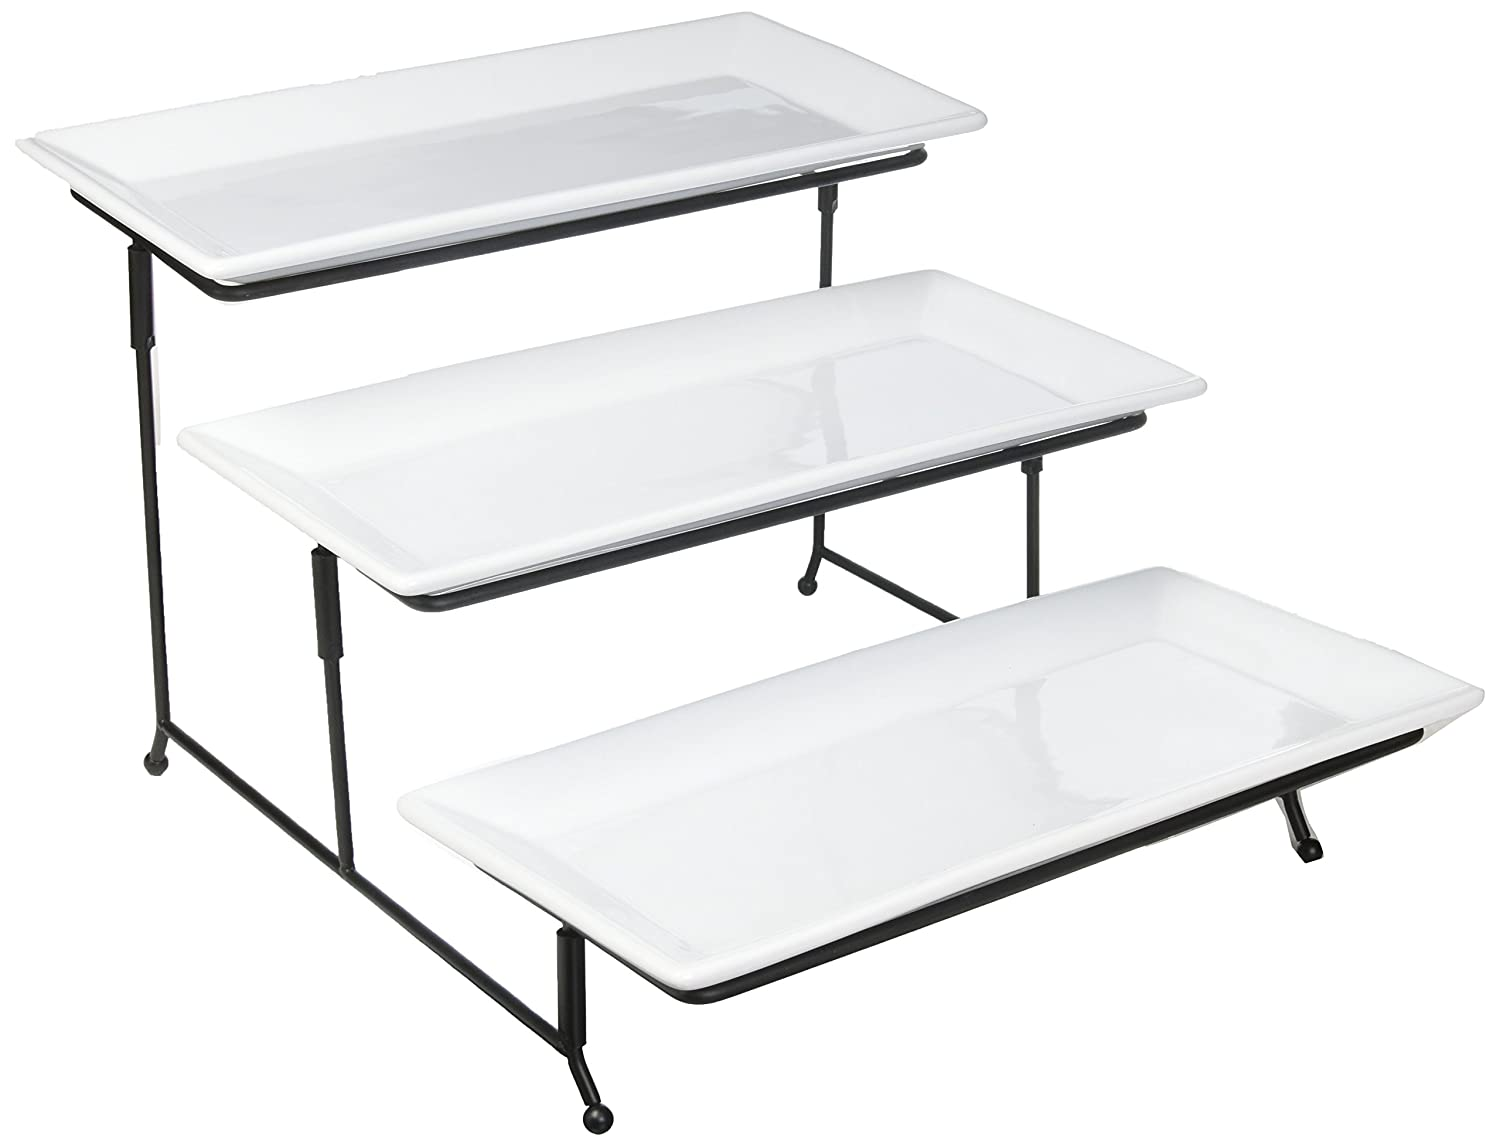 Graciousi Dining Three-Tier Rectangular Plate Set, White And Black